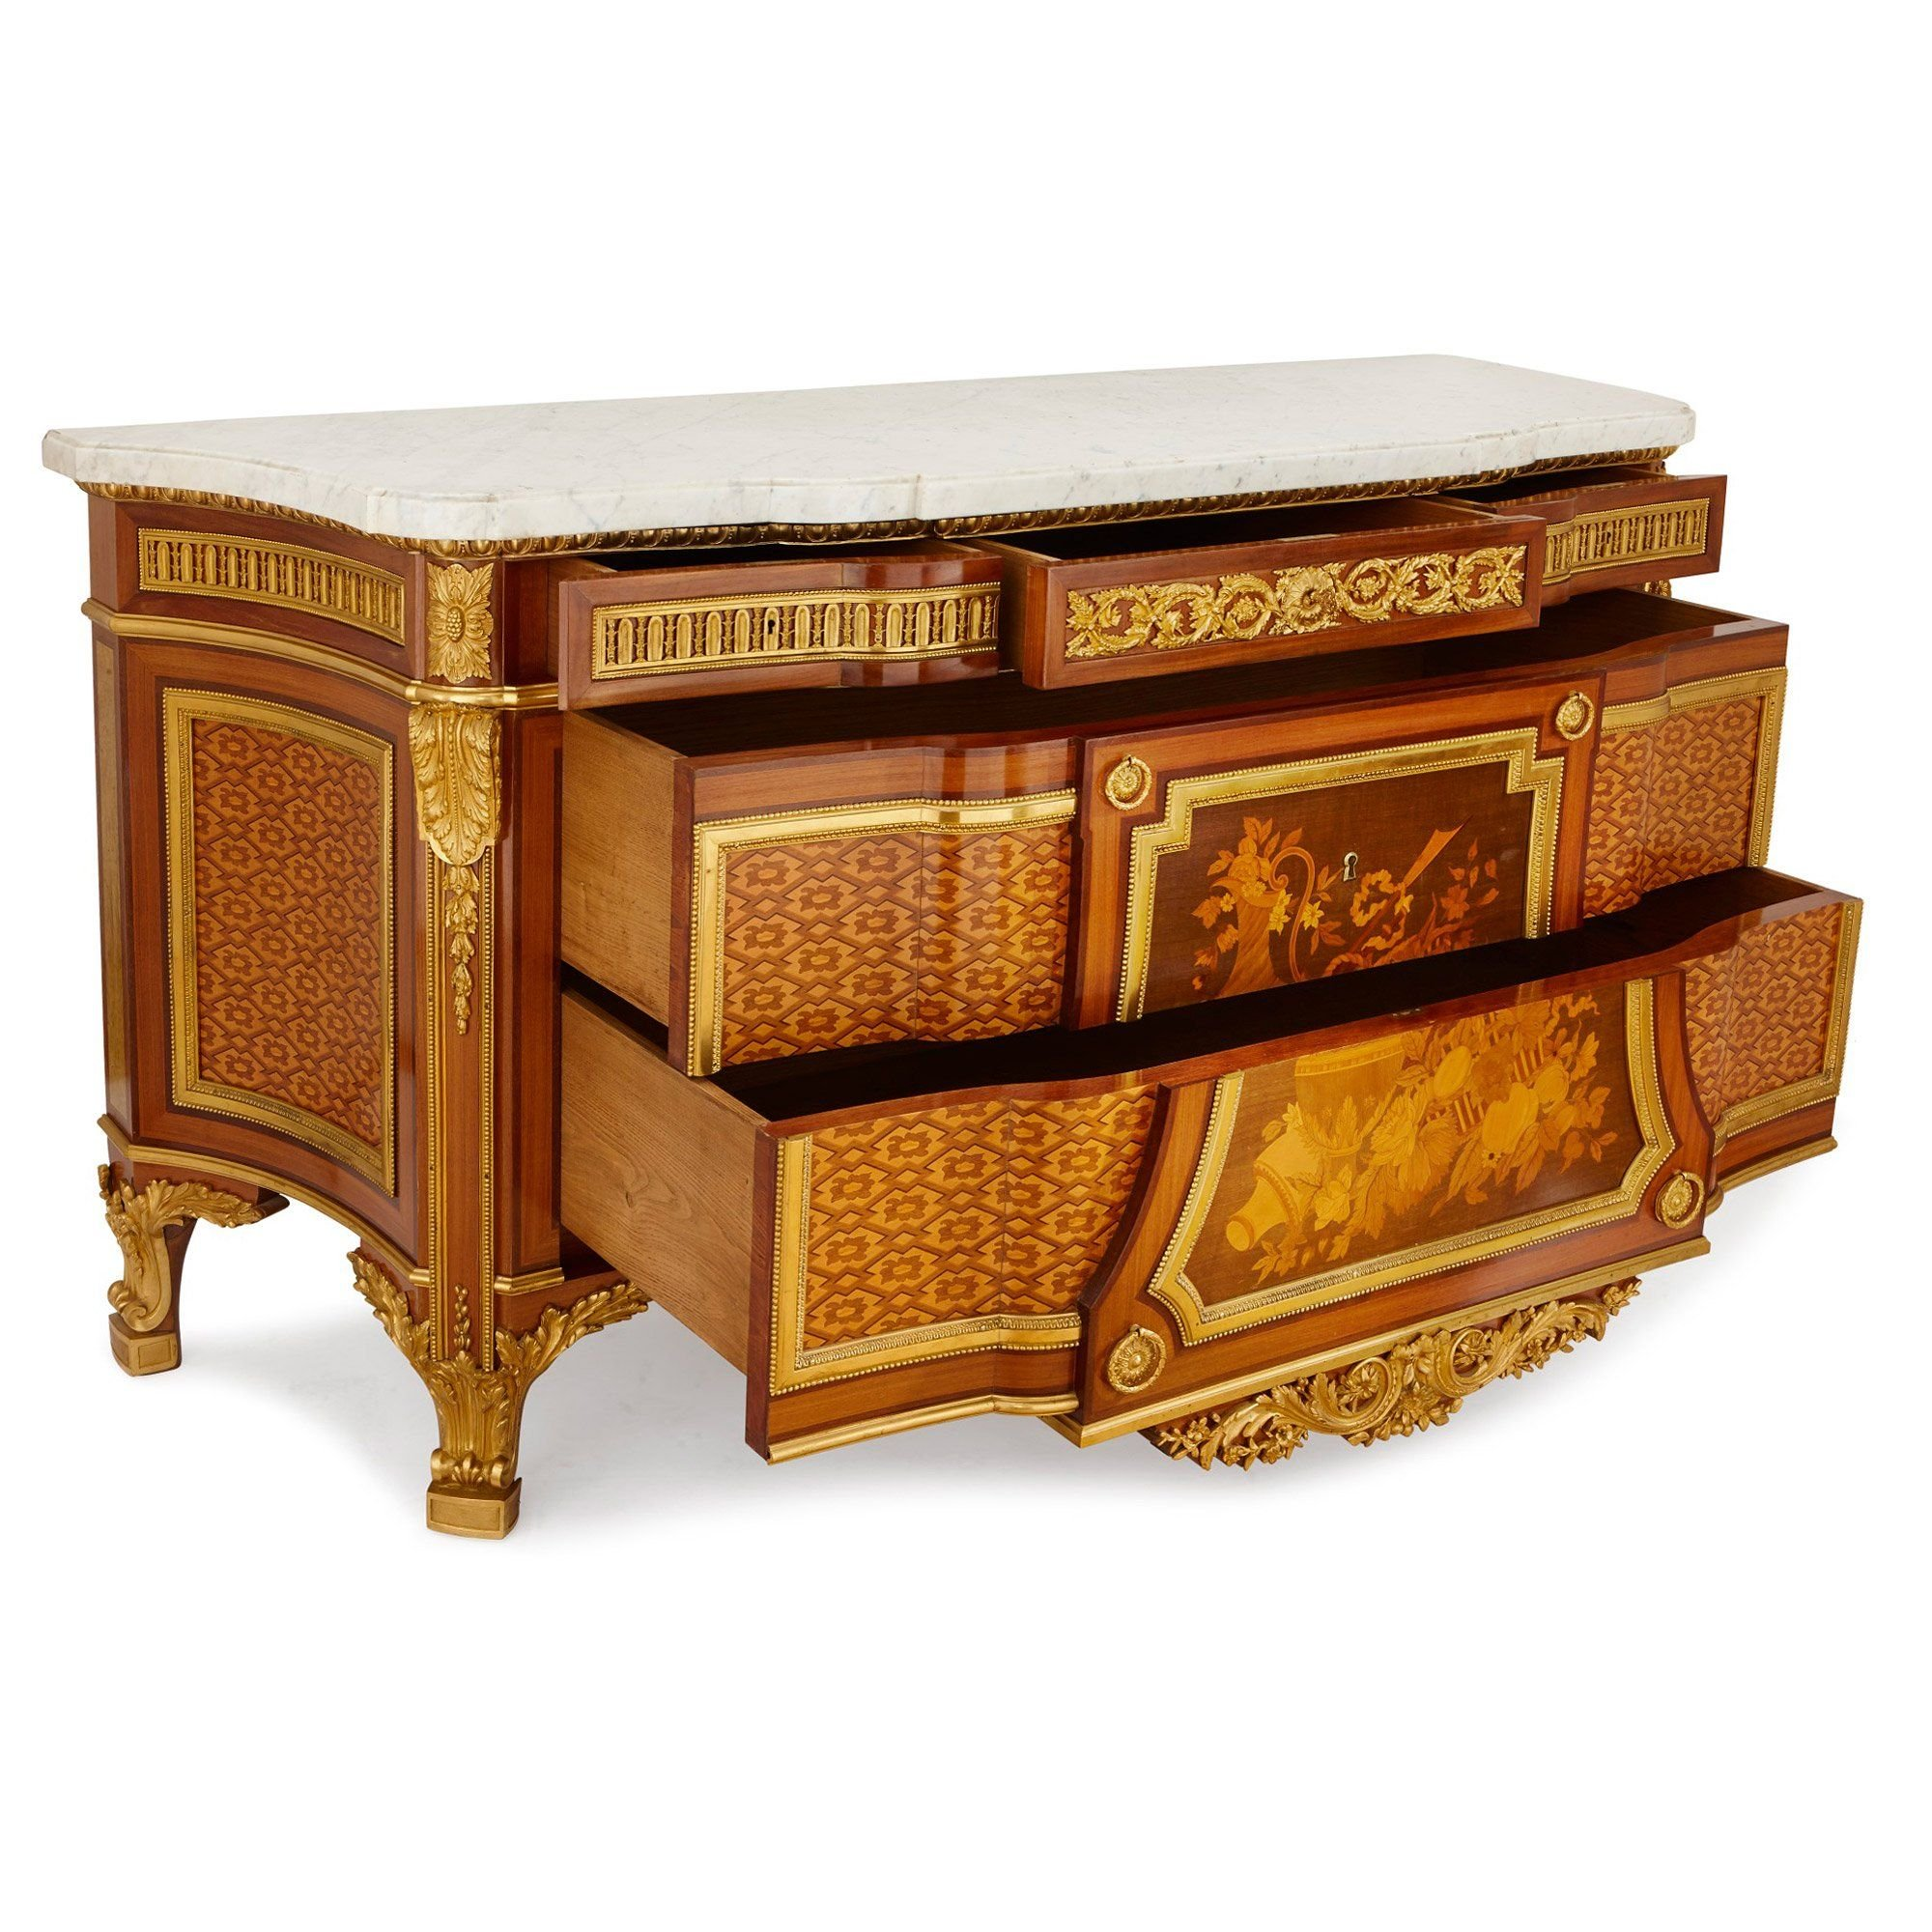 Antique French Marquetry Commode By Mercier Freres